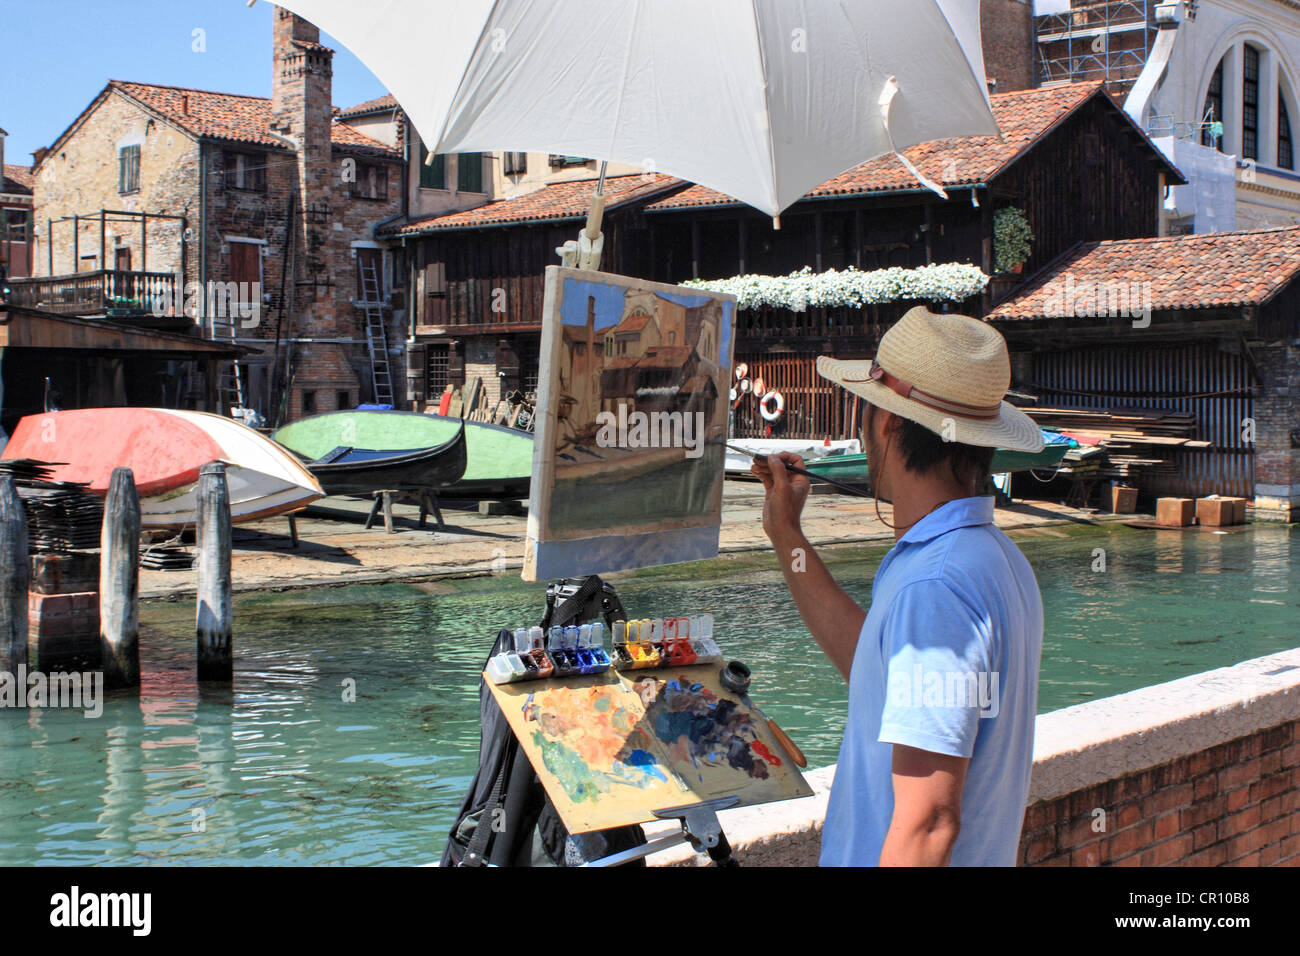 Significato Pittura En Plein Air Painting Lessons Immagini Painting Lessons Fotos Stock Alamy